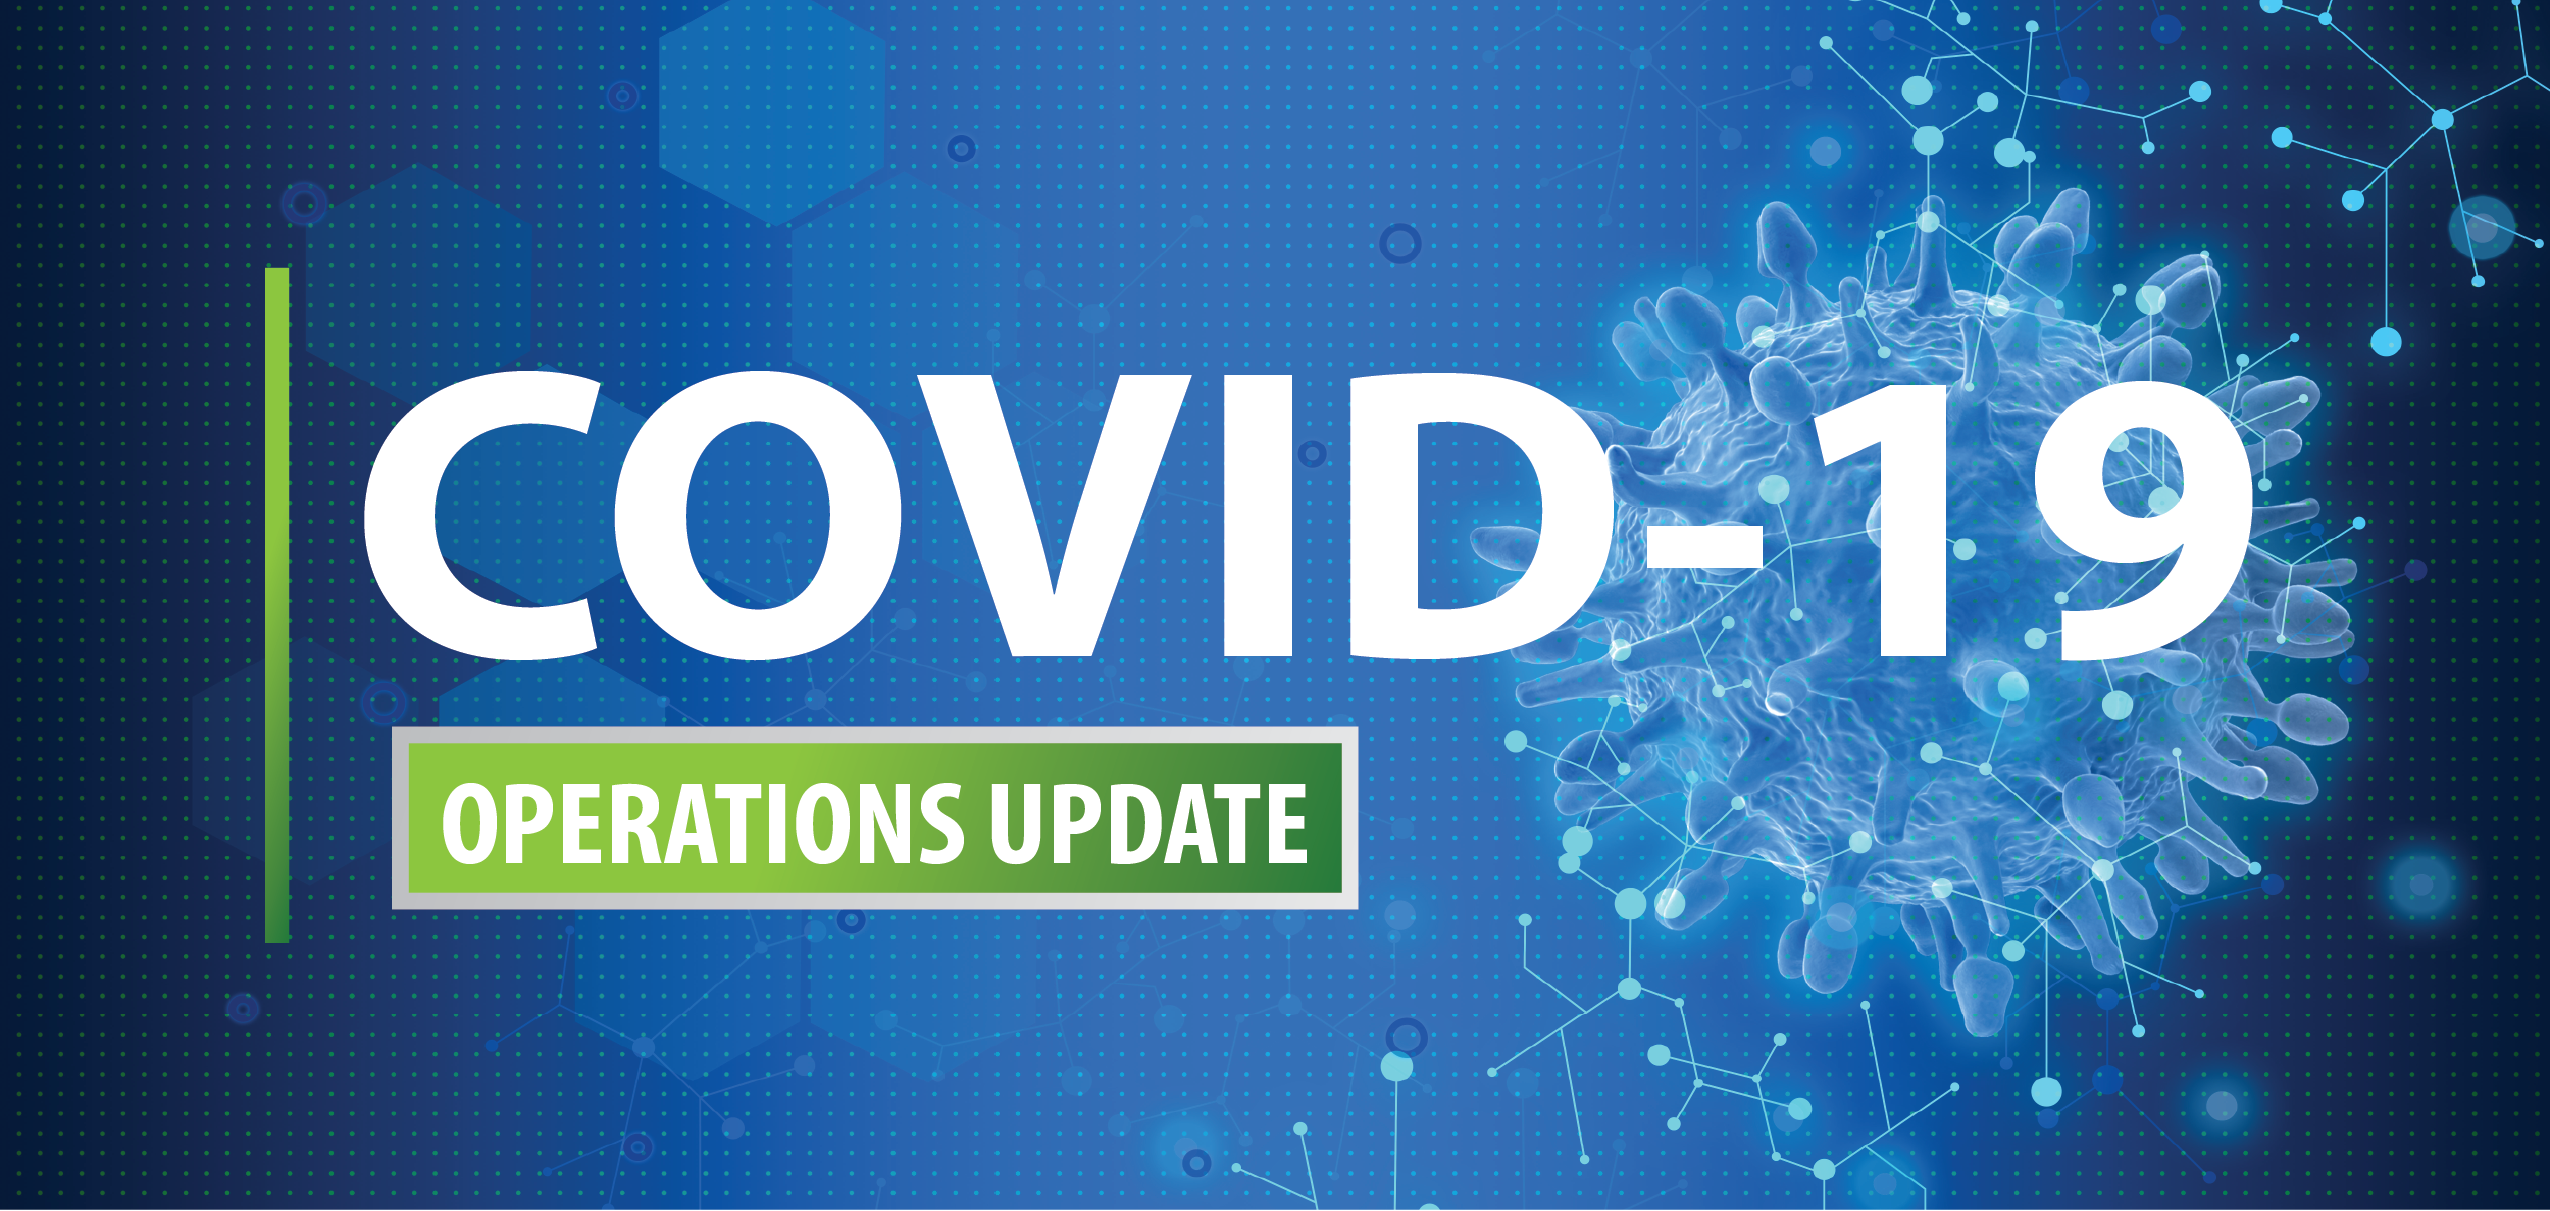 COVID19 operations update